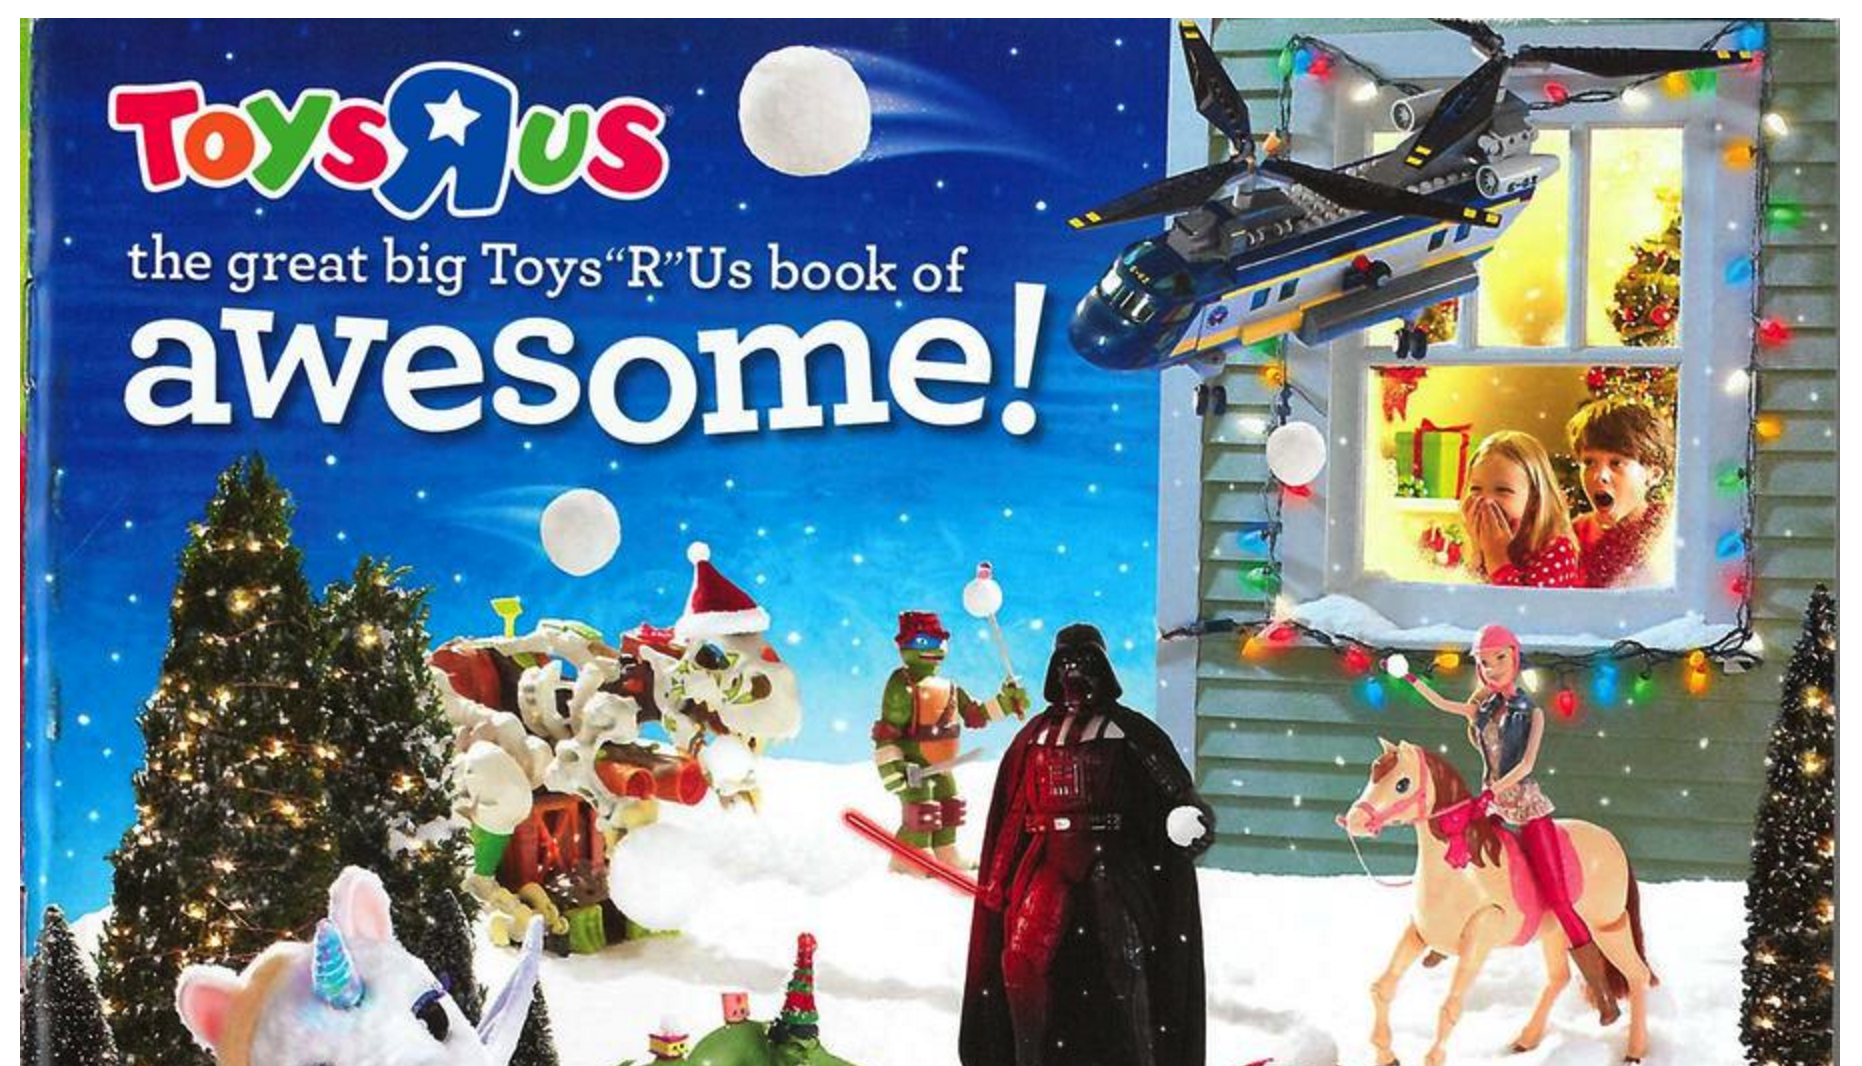 2015 Toys R Us Toy Book Of Awesome